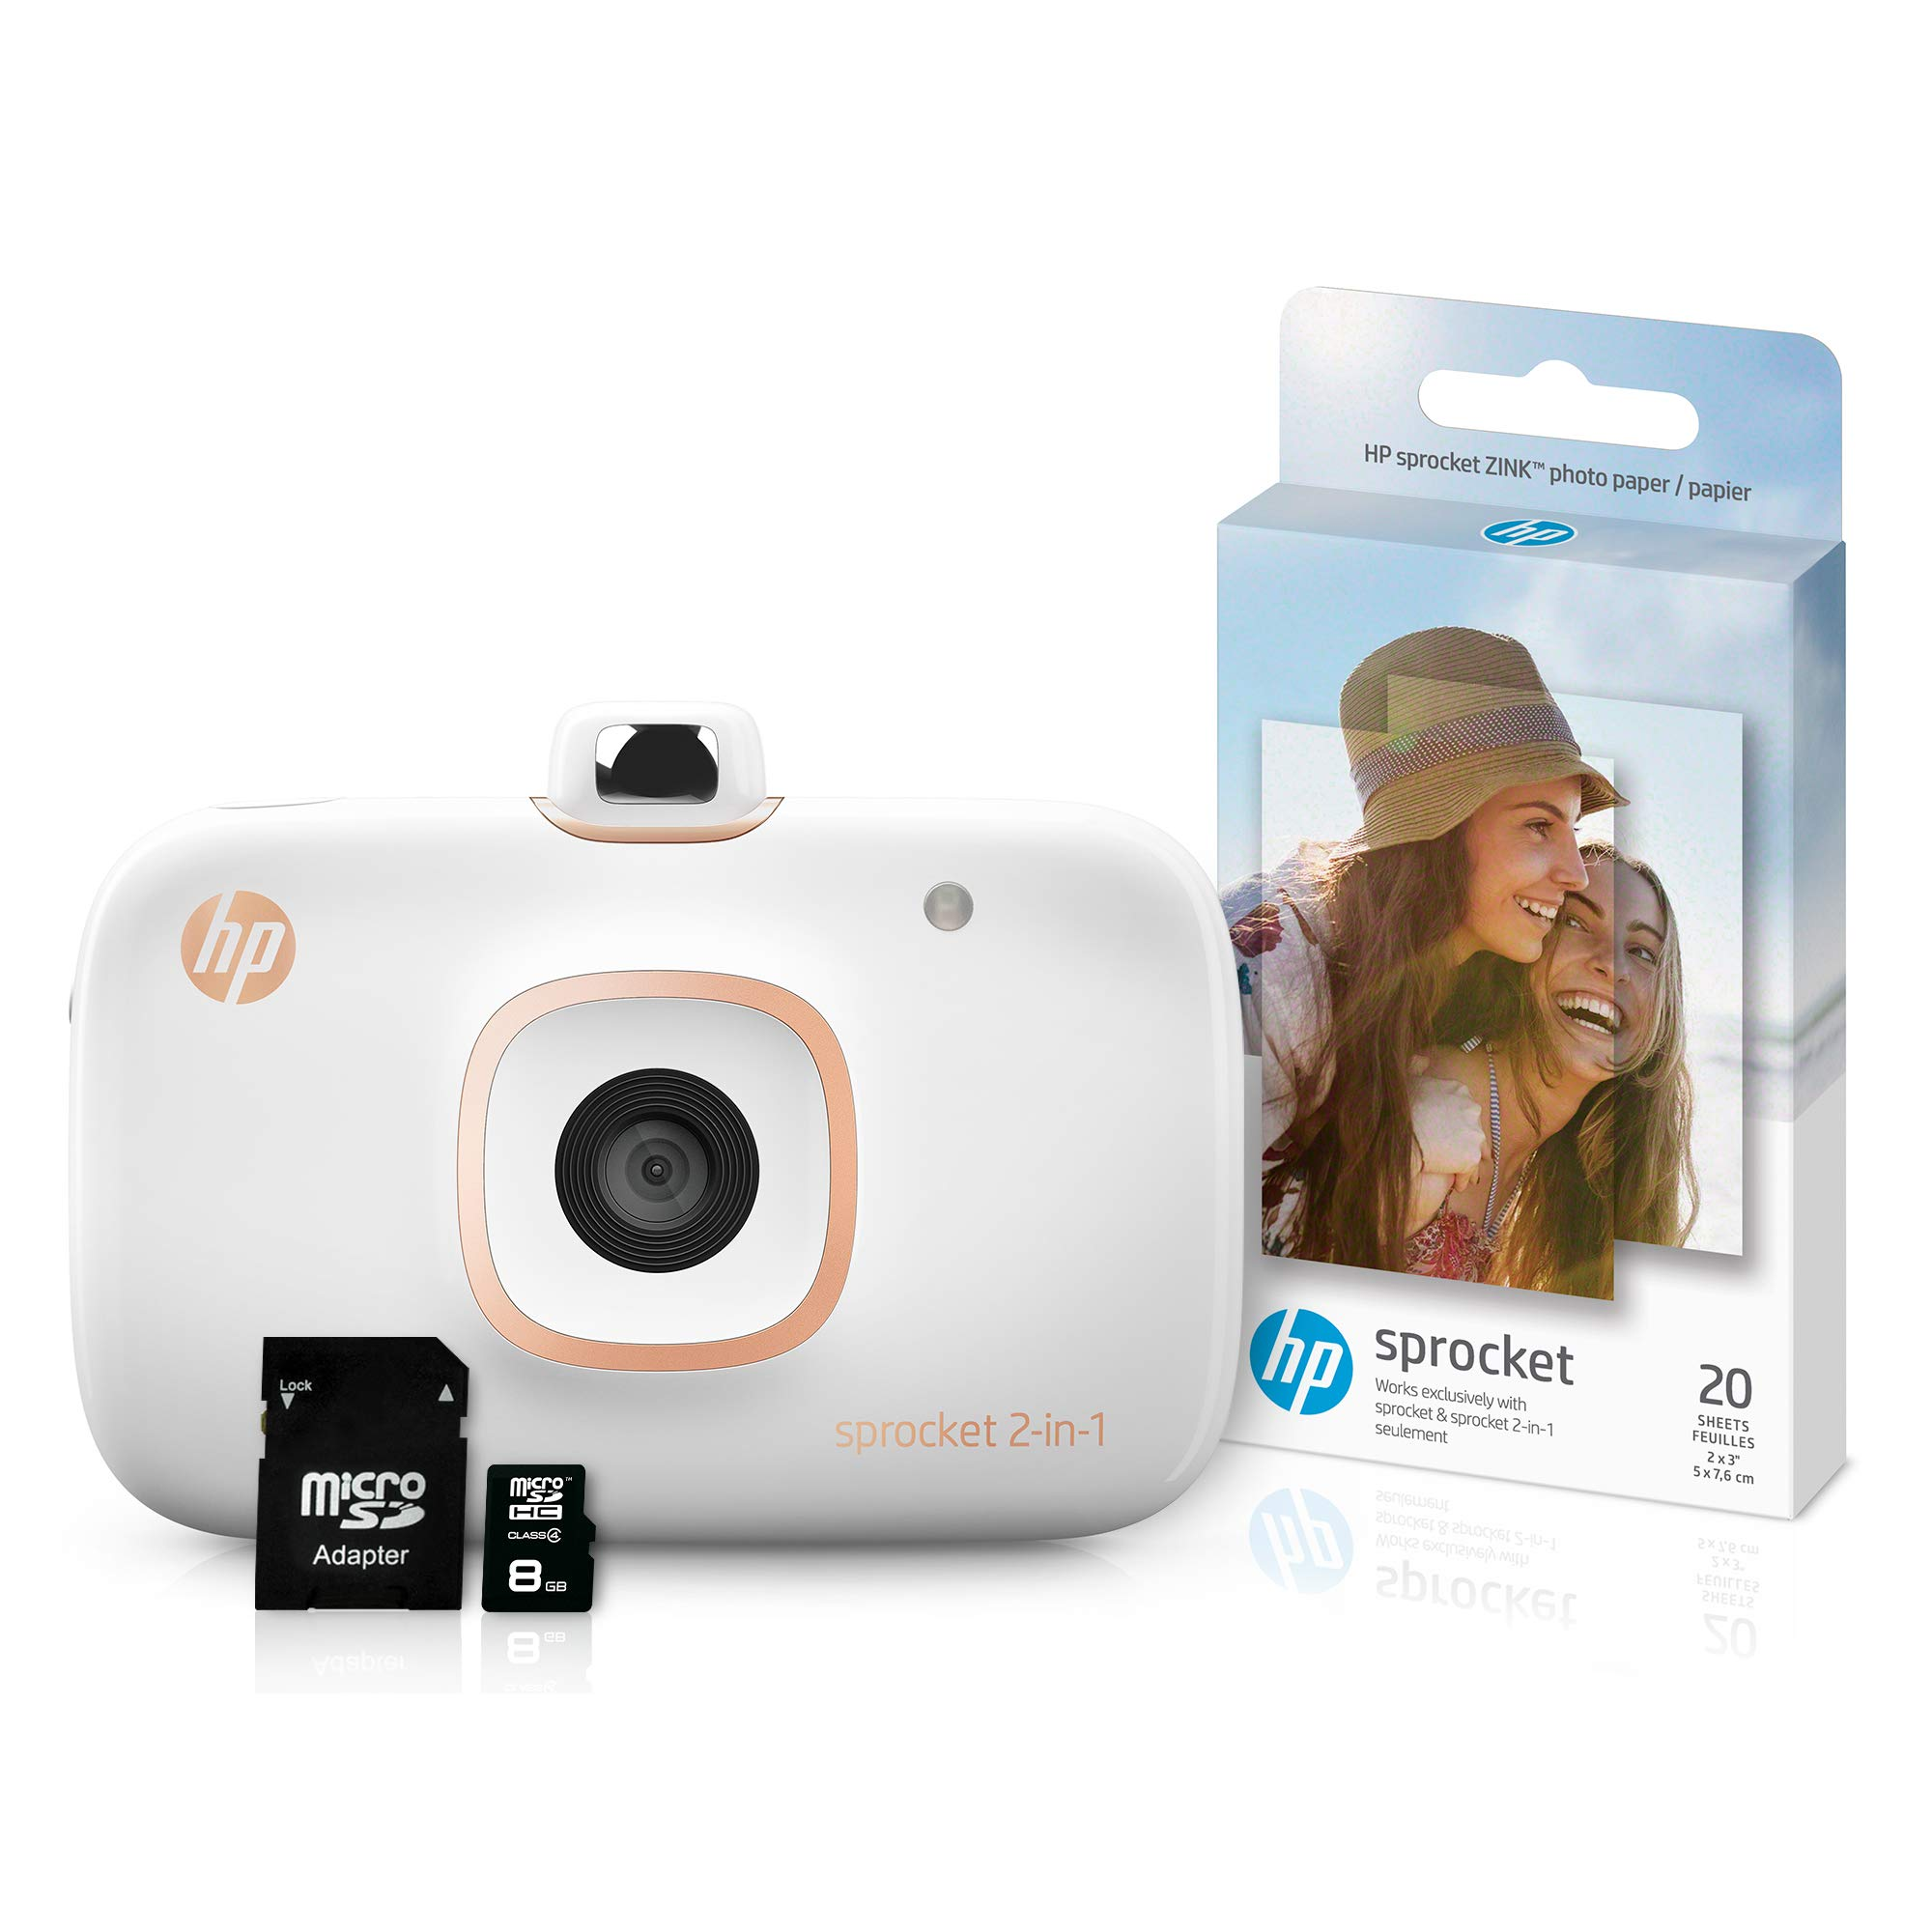 HP Sprocket 2-in-1 Portable Photo Printer & Instant Camera Bundle with 8GB MicroSD Card and ZINK Photo Paper - White (5MS95A) by HP